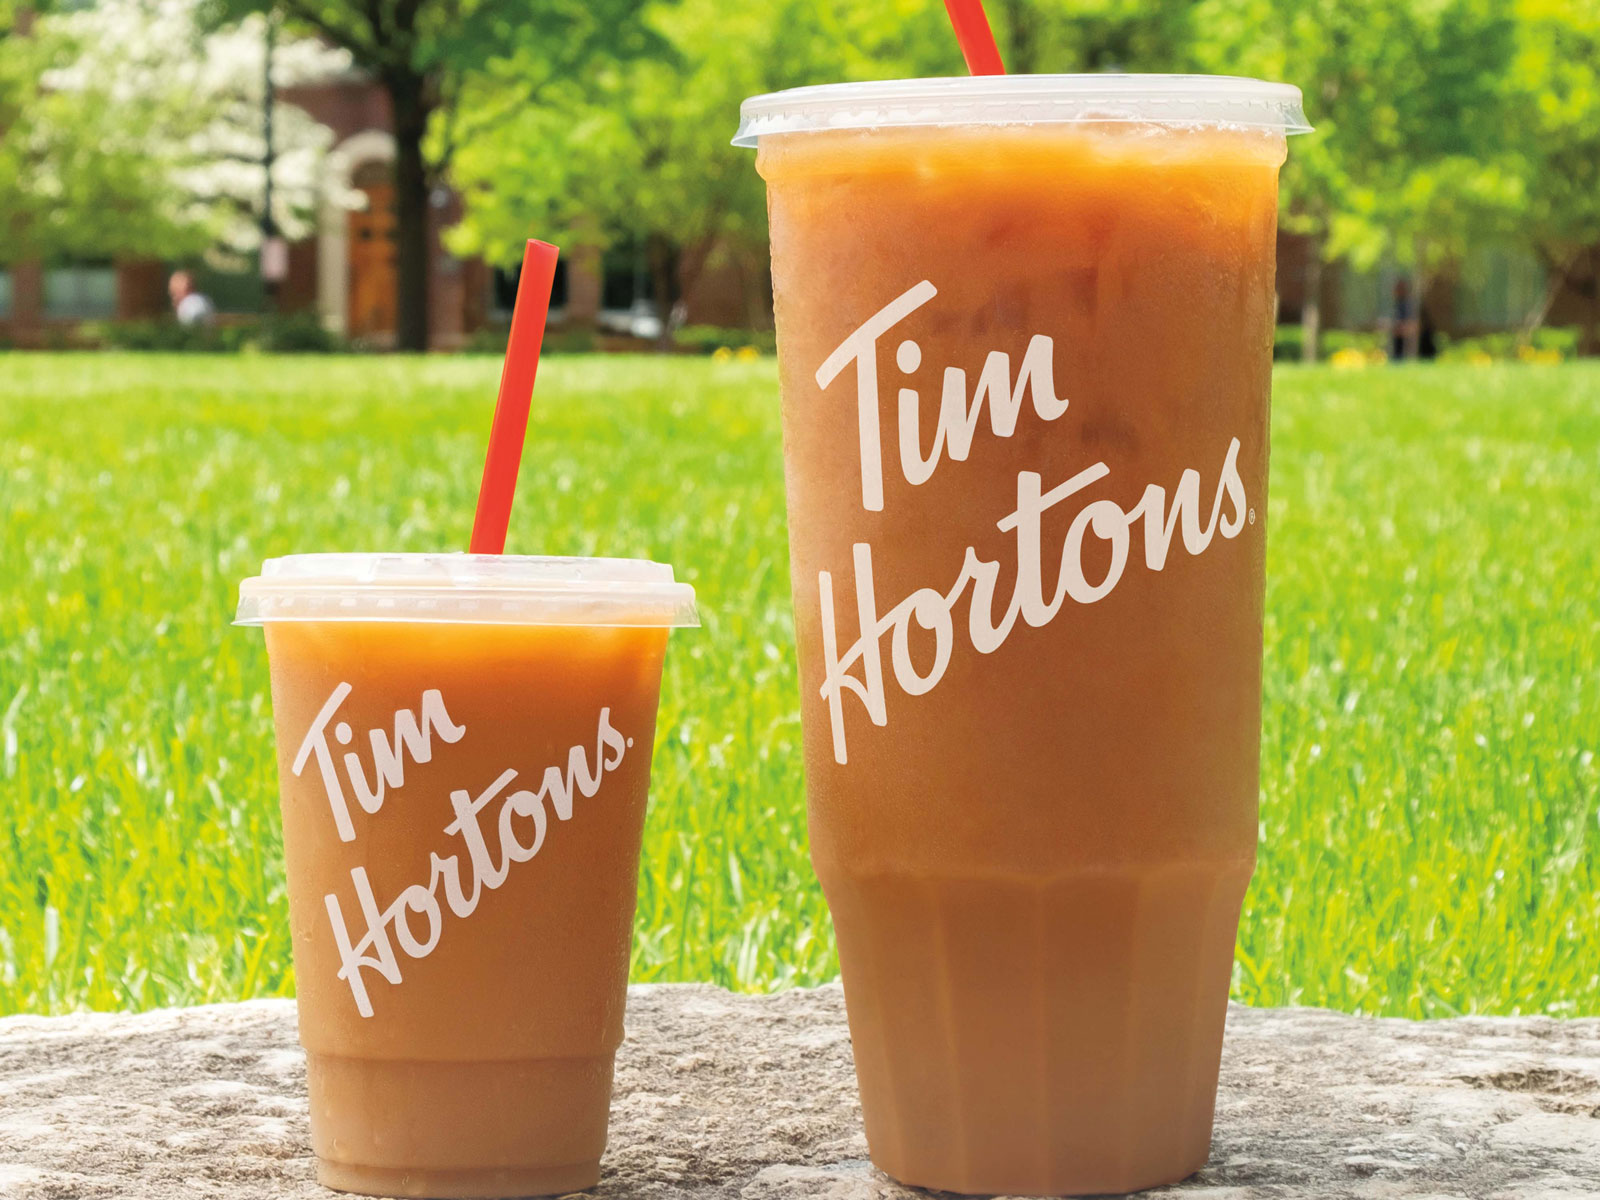 Tim Hortons cups